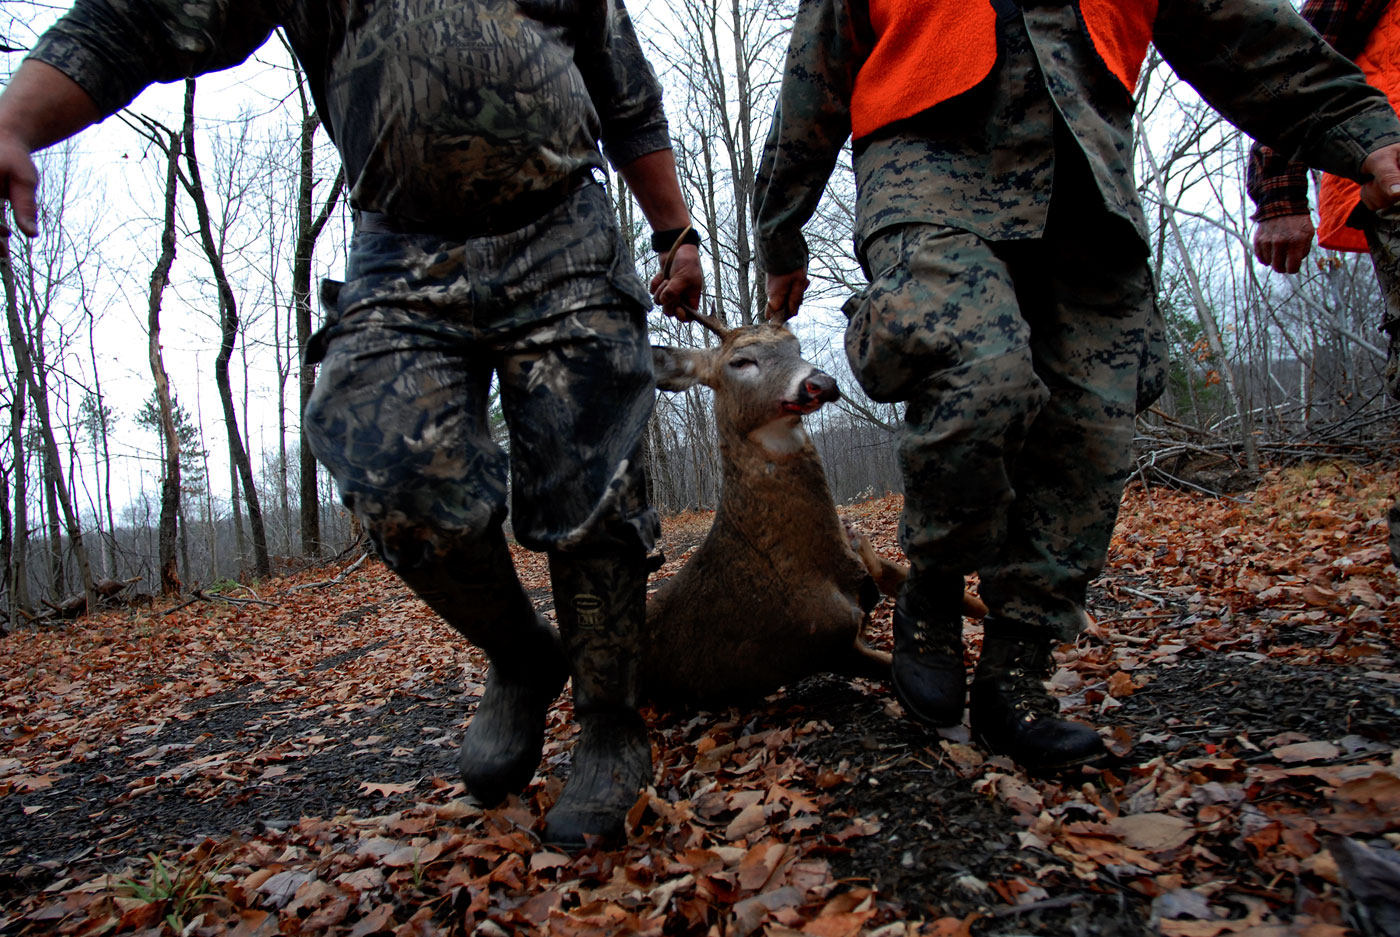 Tim Irwin and Don Joy carry out a deer from the woods that was killed by Bob Vezina, The food harvested from this deer will serve numerous meals to the families of all three hunters.